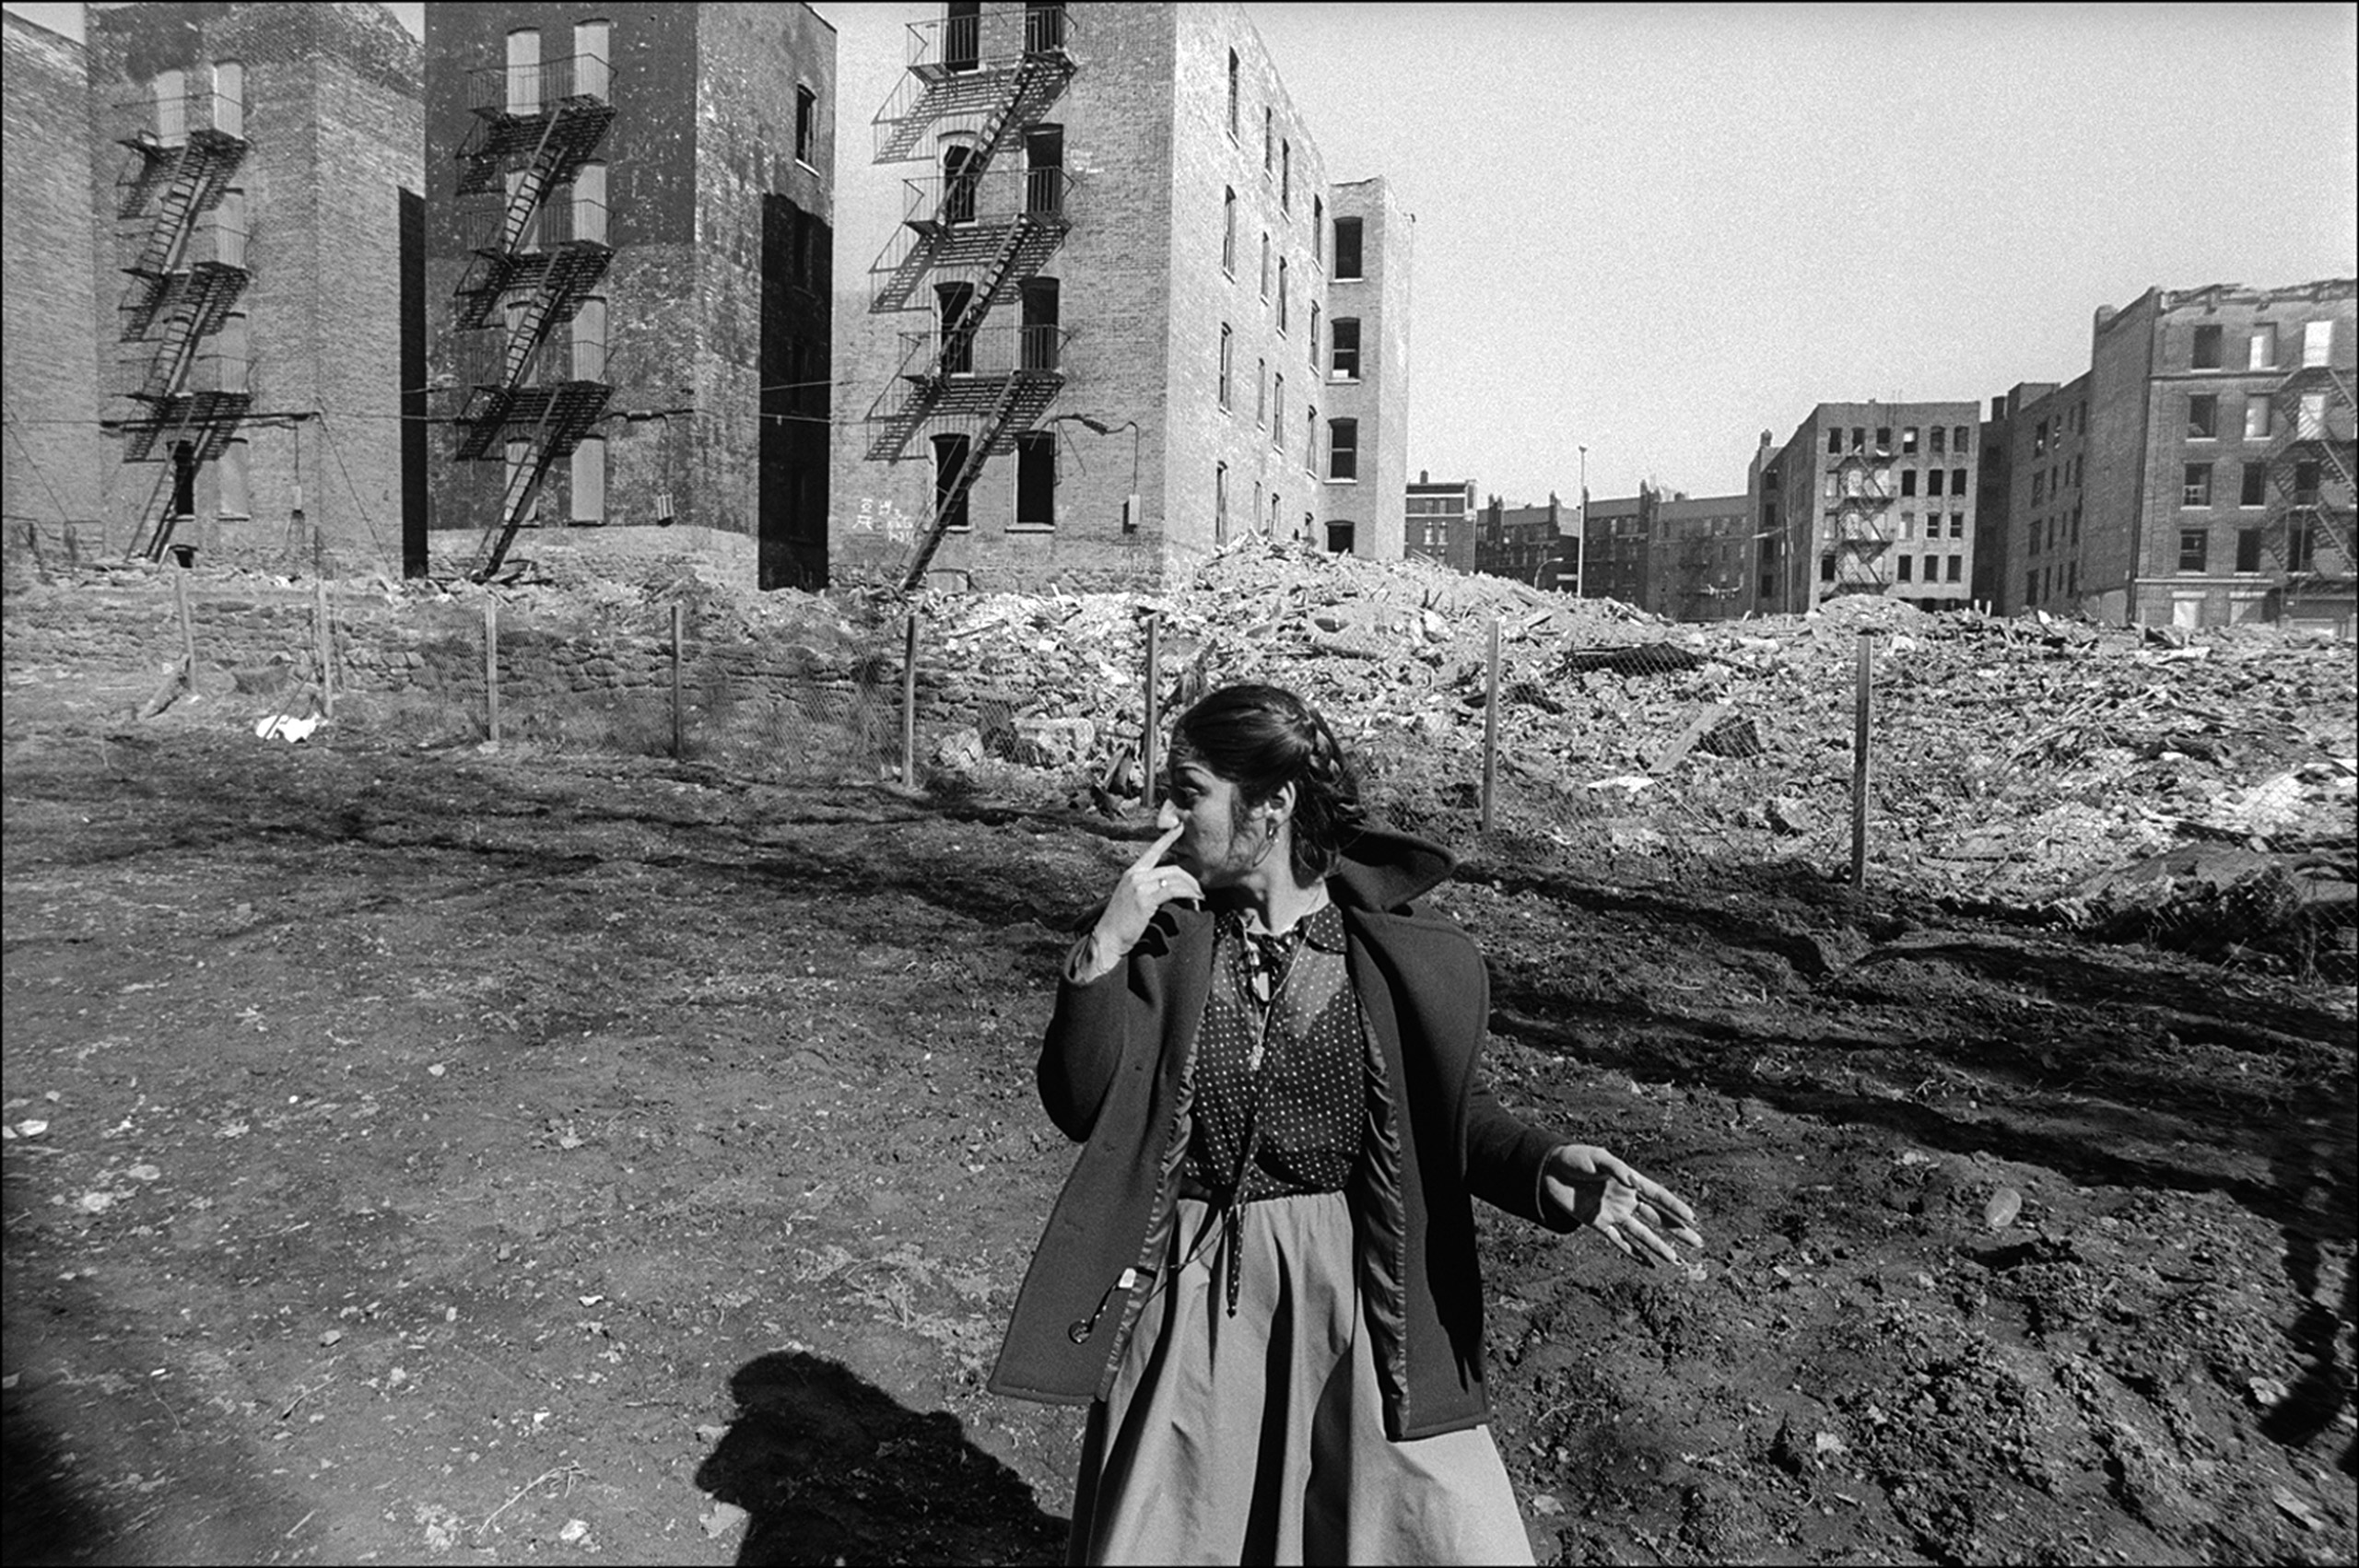 A woman walks among abandoned buildings in the South Bronx, New York, March 1979.